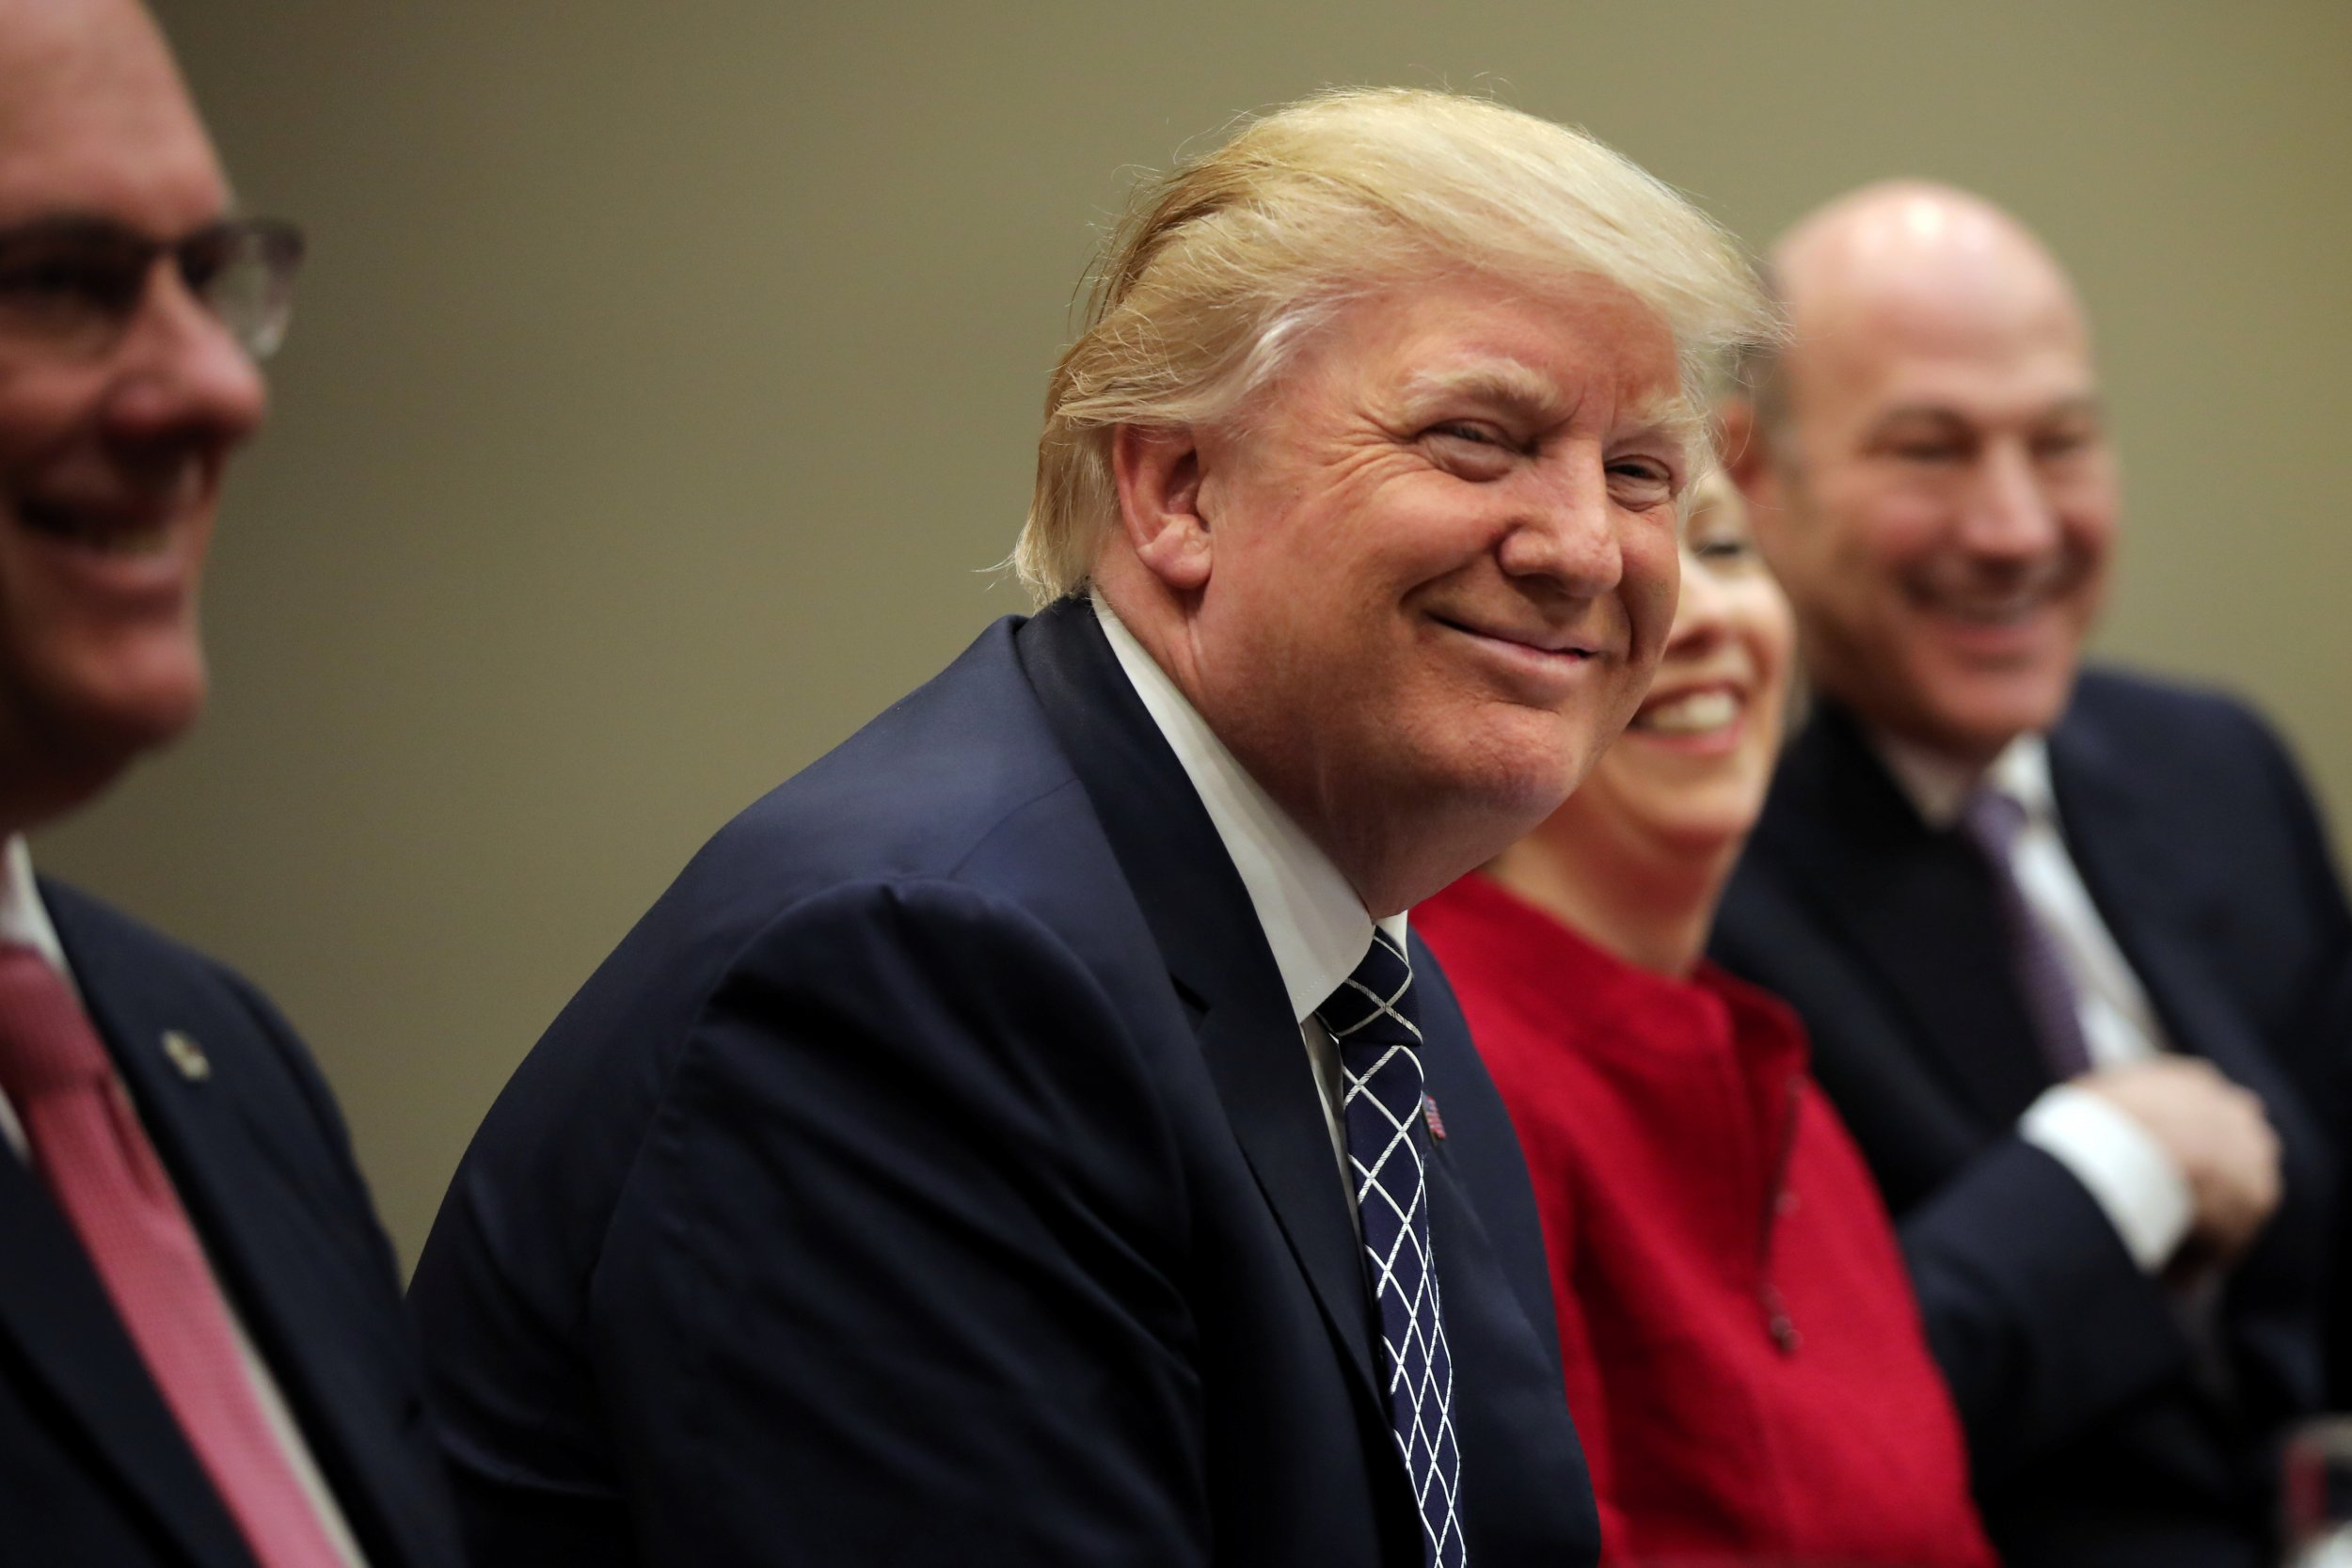 Trump's weaknesses seen as strengths with GOP voters